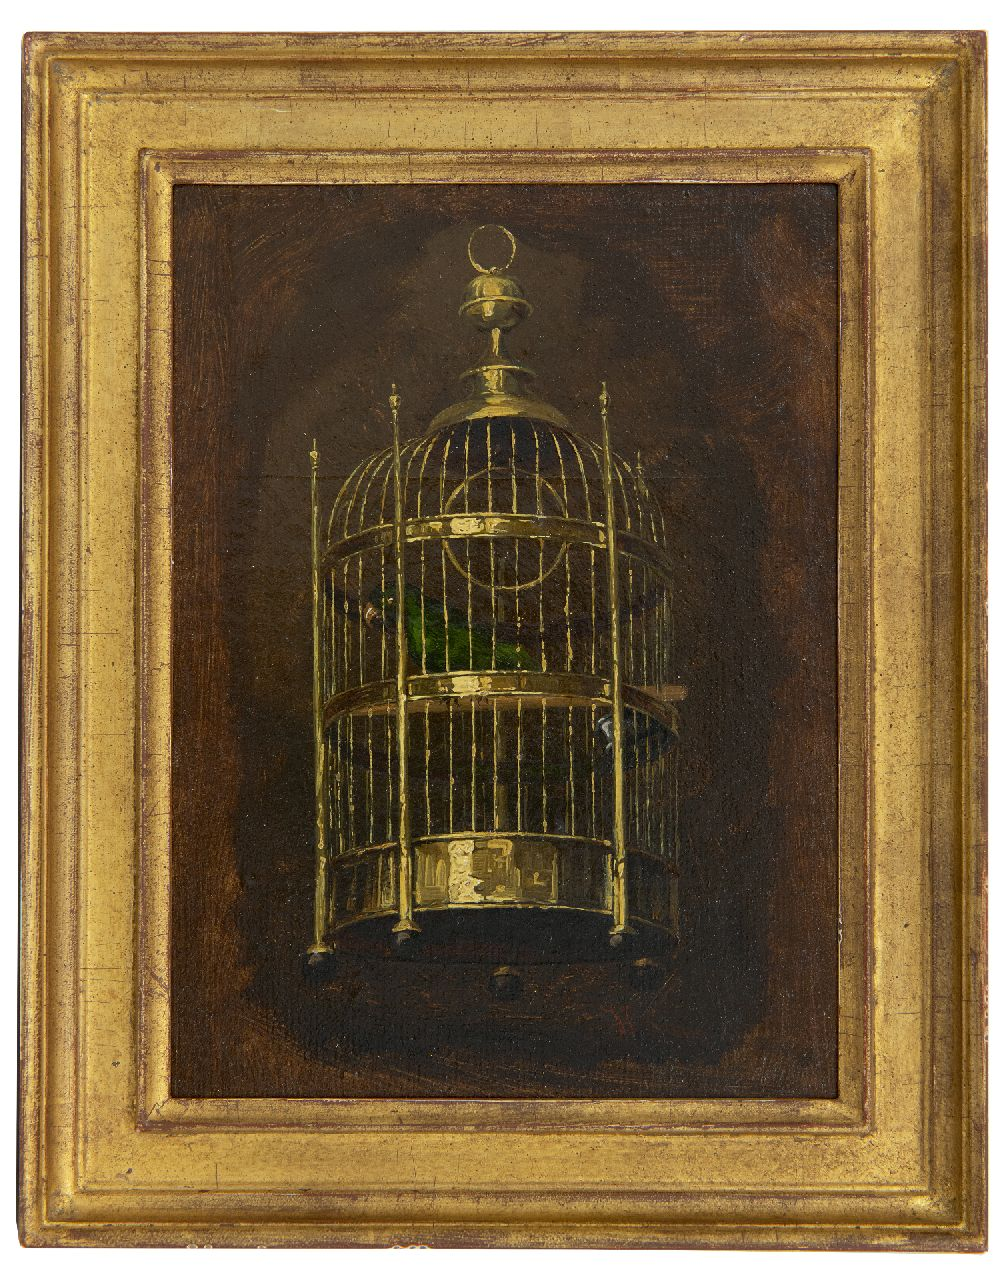 Savrij H.  | Hendrik Savrij | Paintings offered for sale | The parrot cage, oil on canvas laid down on panel 22.1 x 16.1 cm, signed l.r.